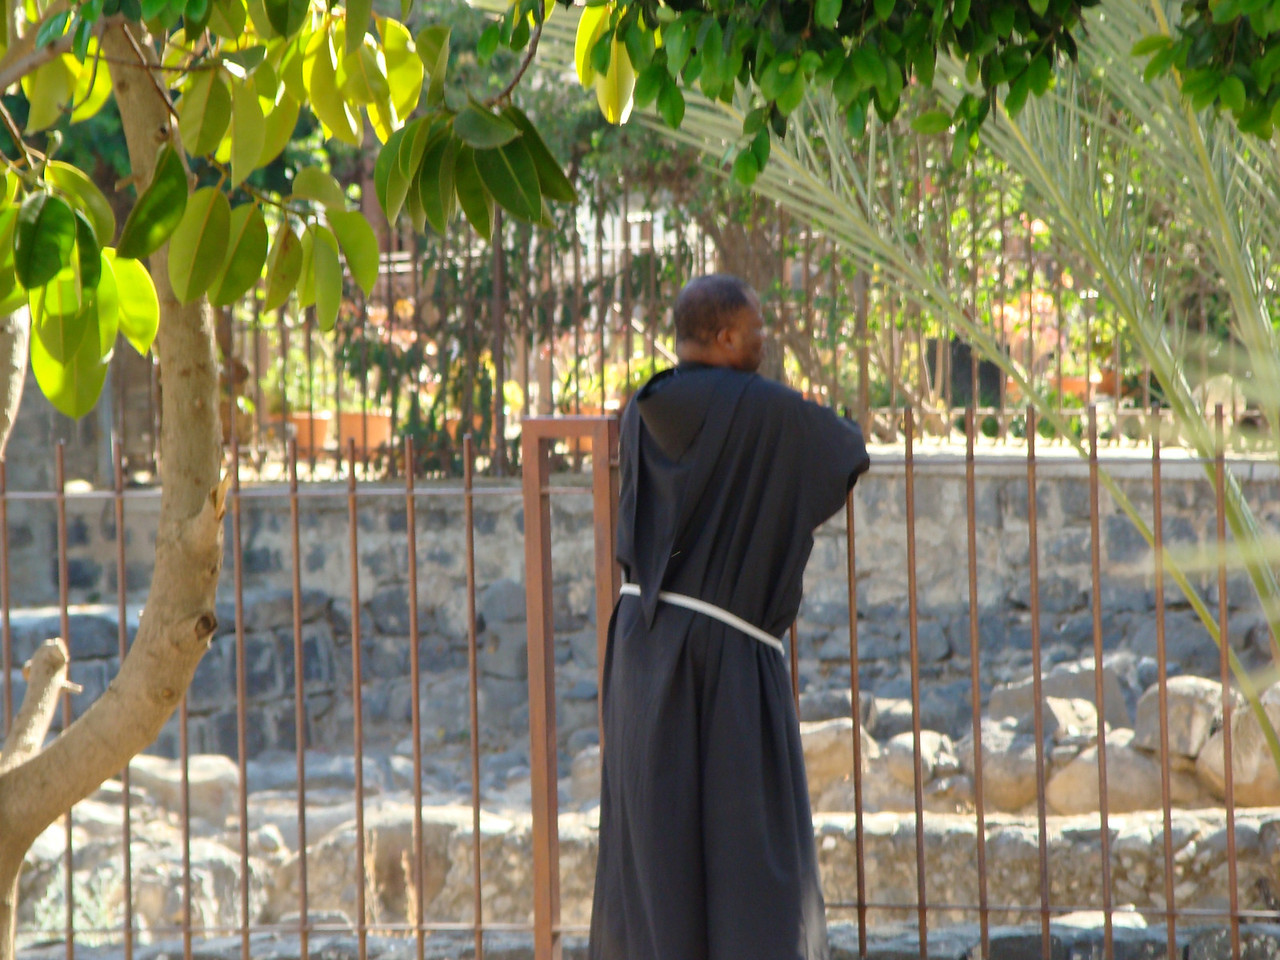 Priest at Capharnaum